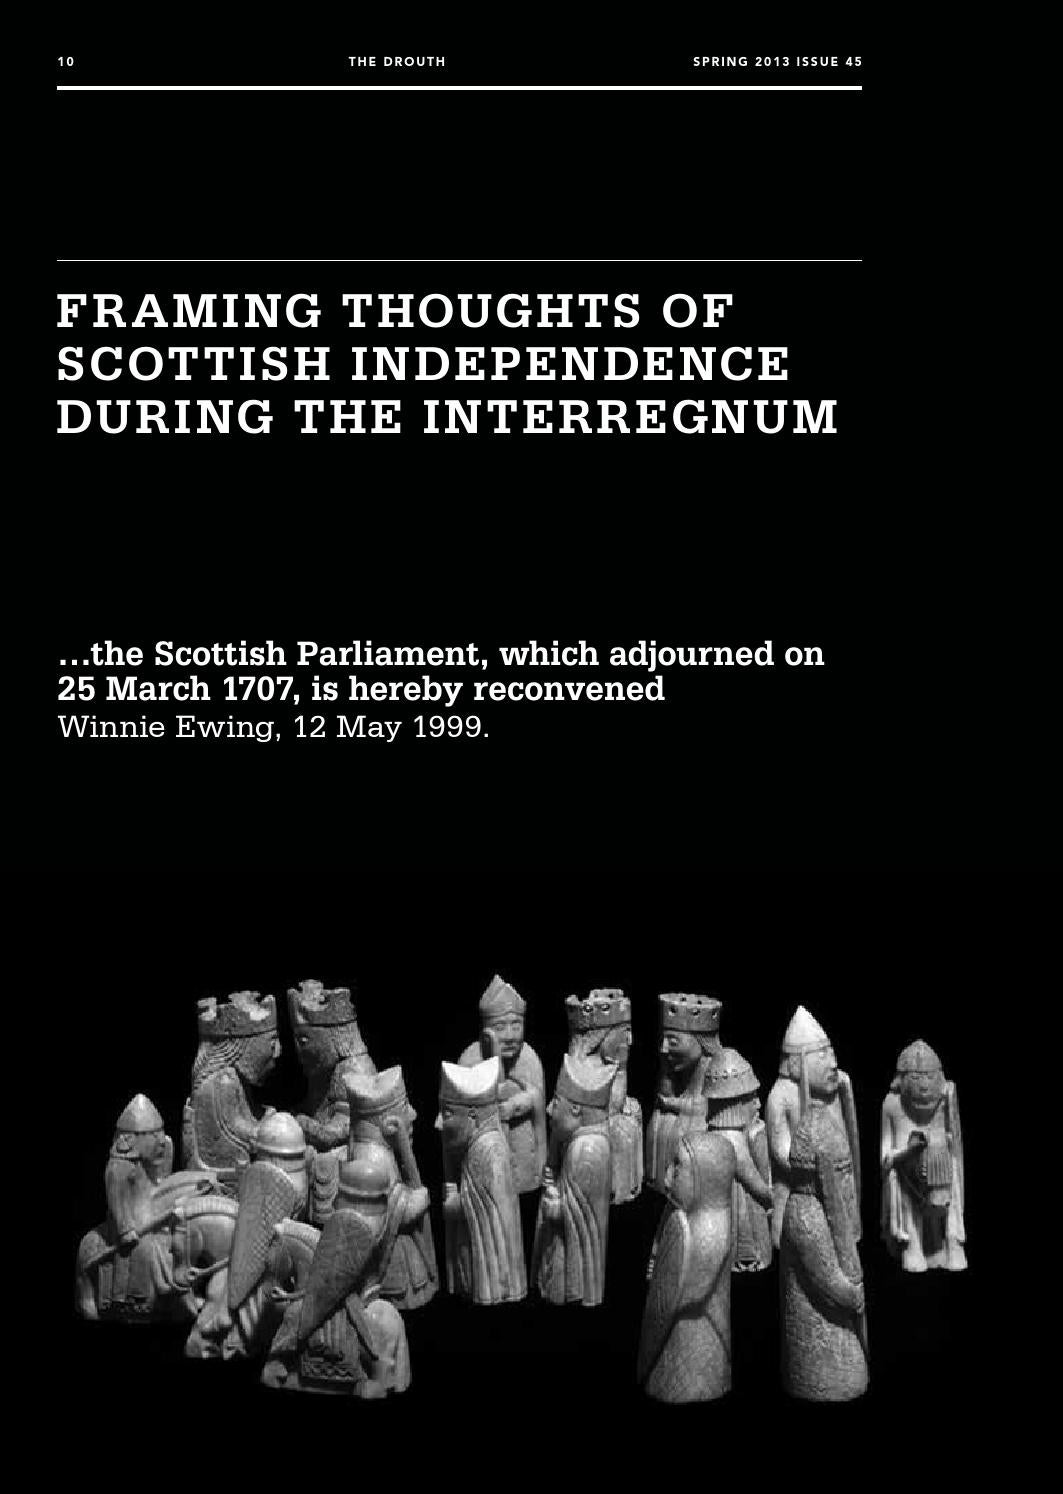 catriona macdonald framing independence by drouth   issuu